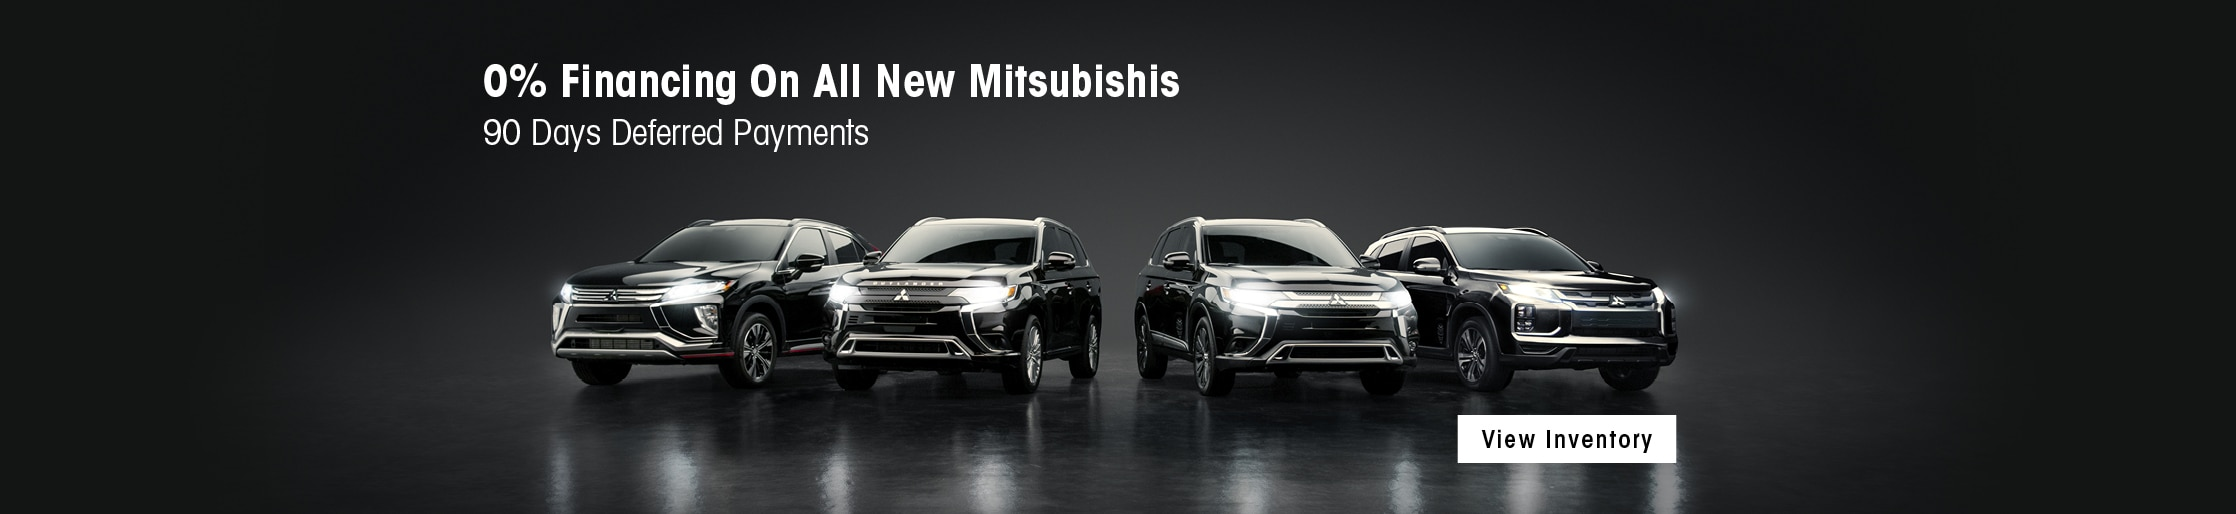 0% Financing on all new Mitsubishis. 90 Days deferred payments.